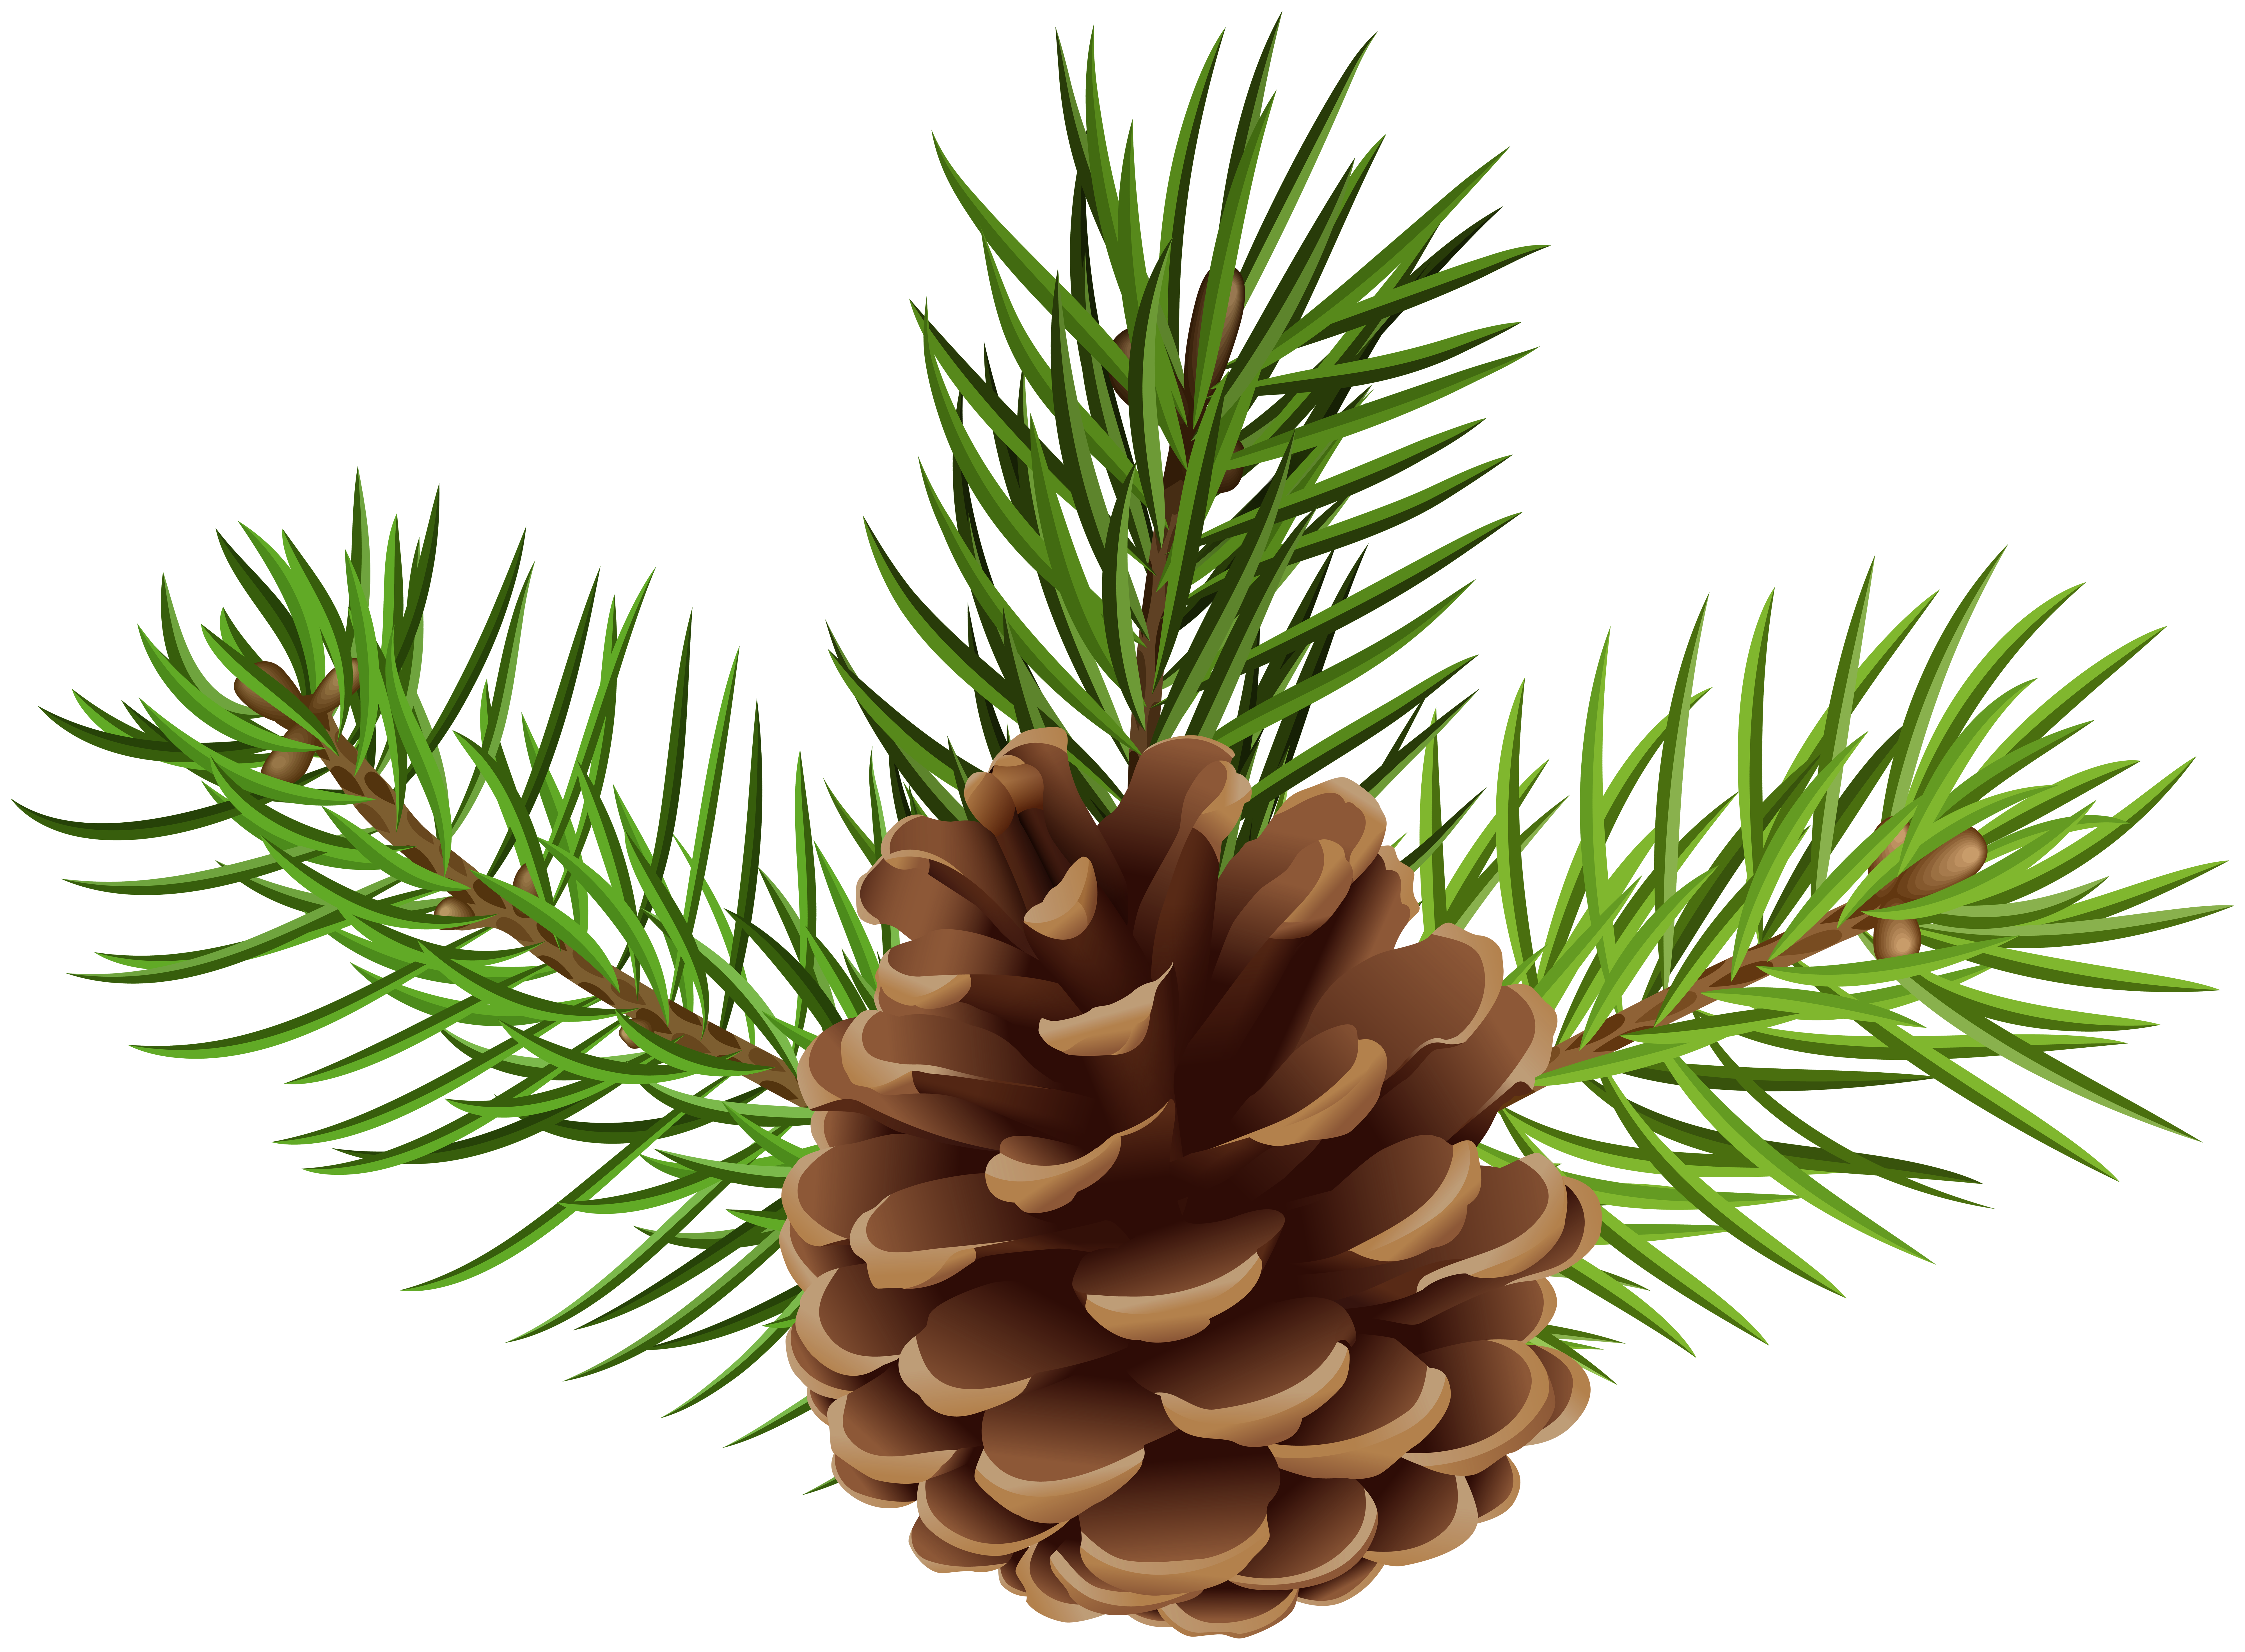 Pinecone clipart pine sprig. Cone png clip art